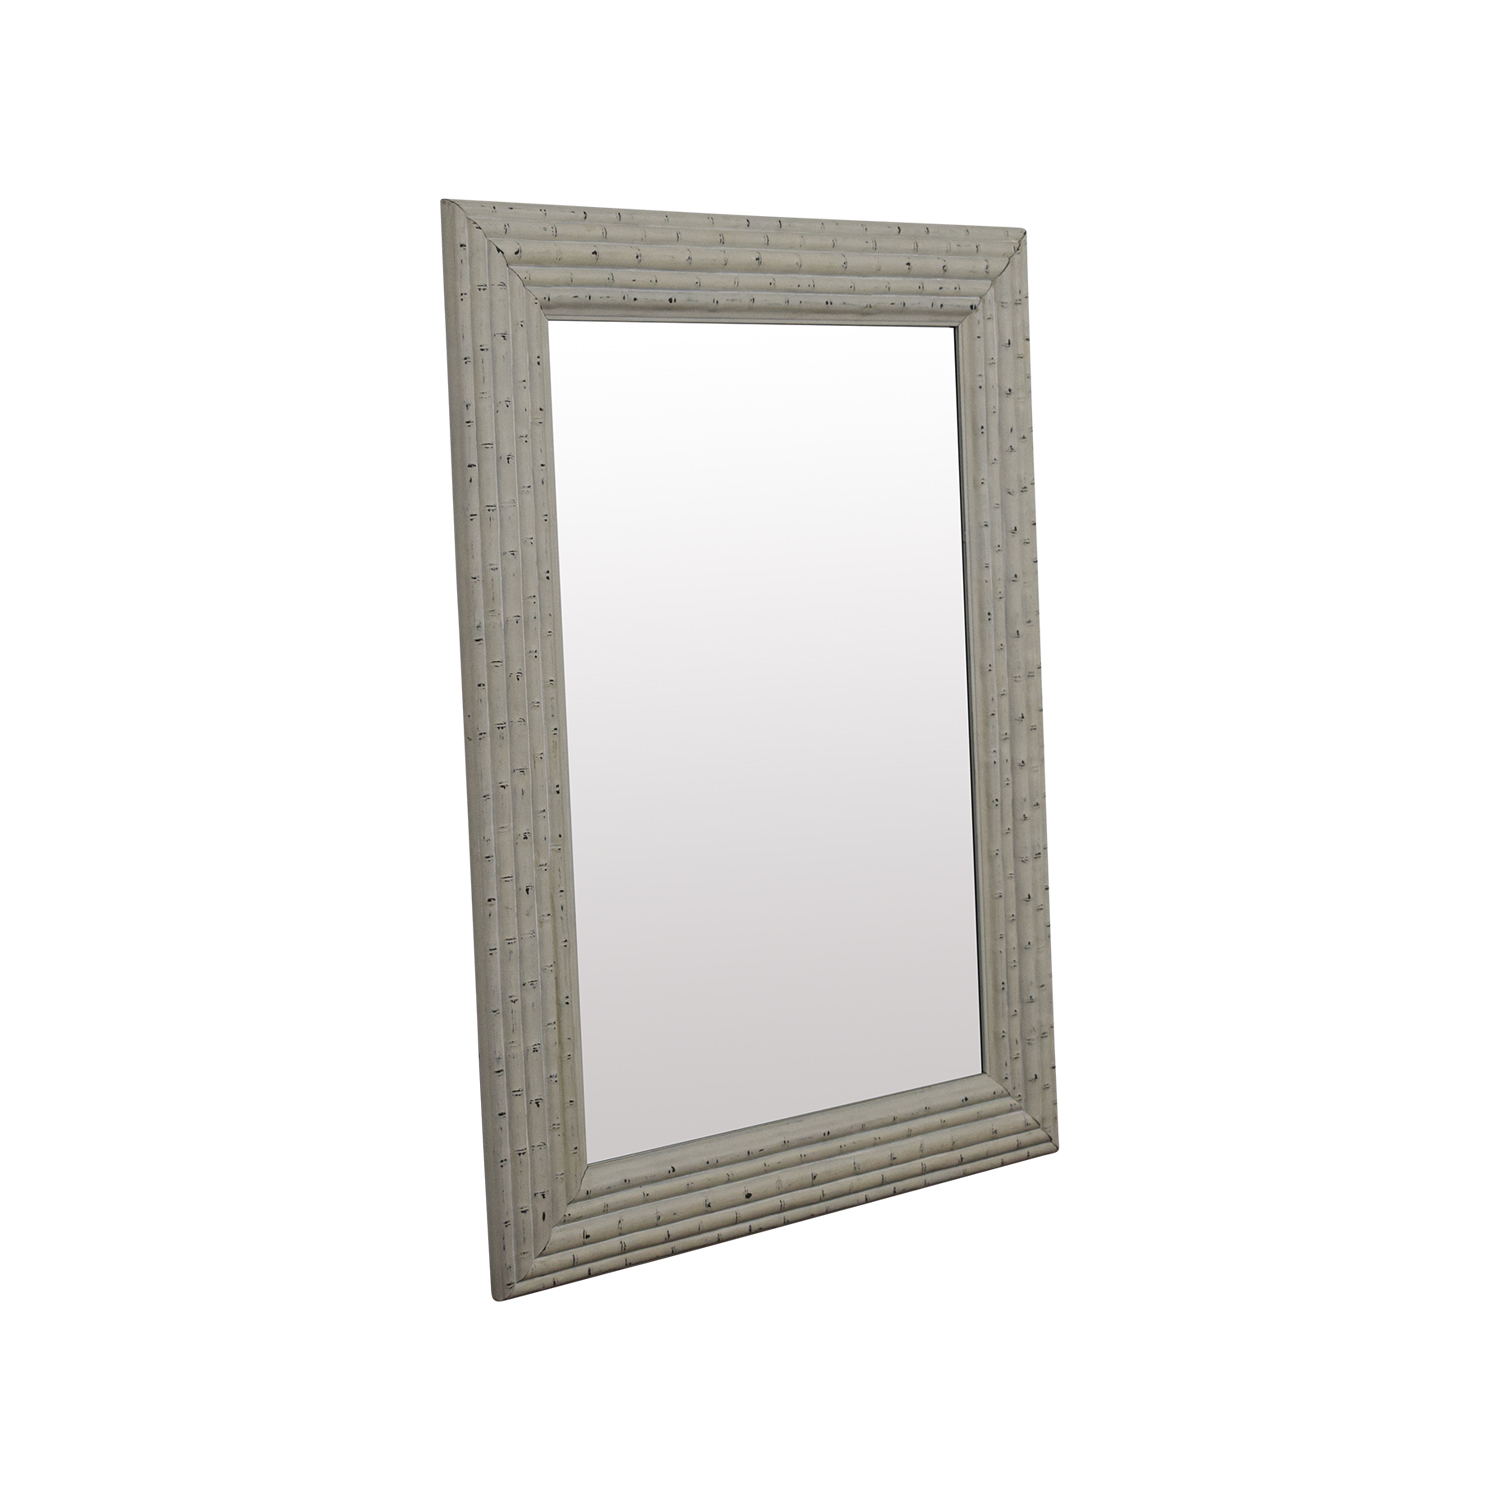 HomeGoods HomeGoods Large White Bamboo Mirror for sale